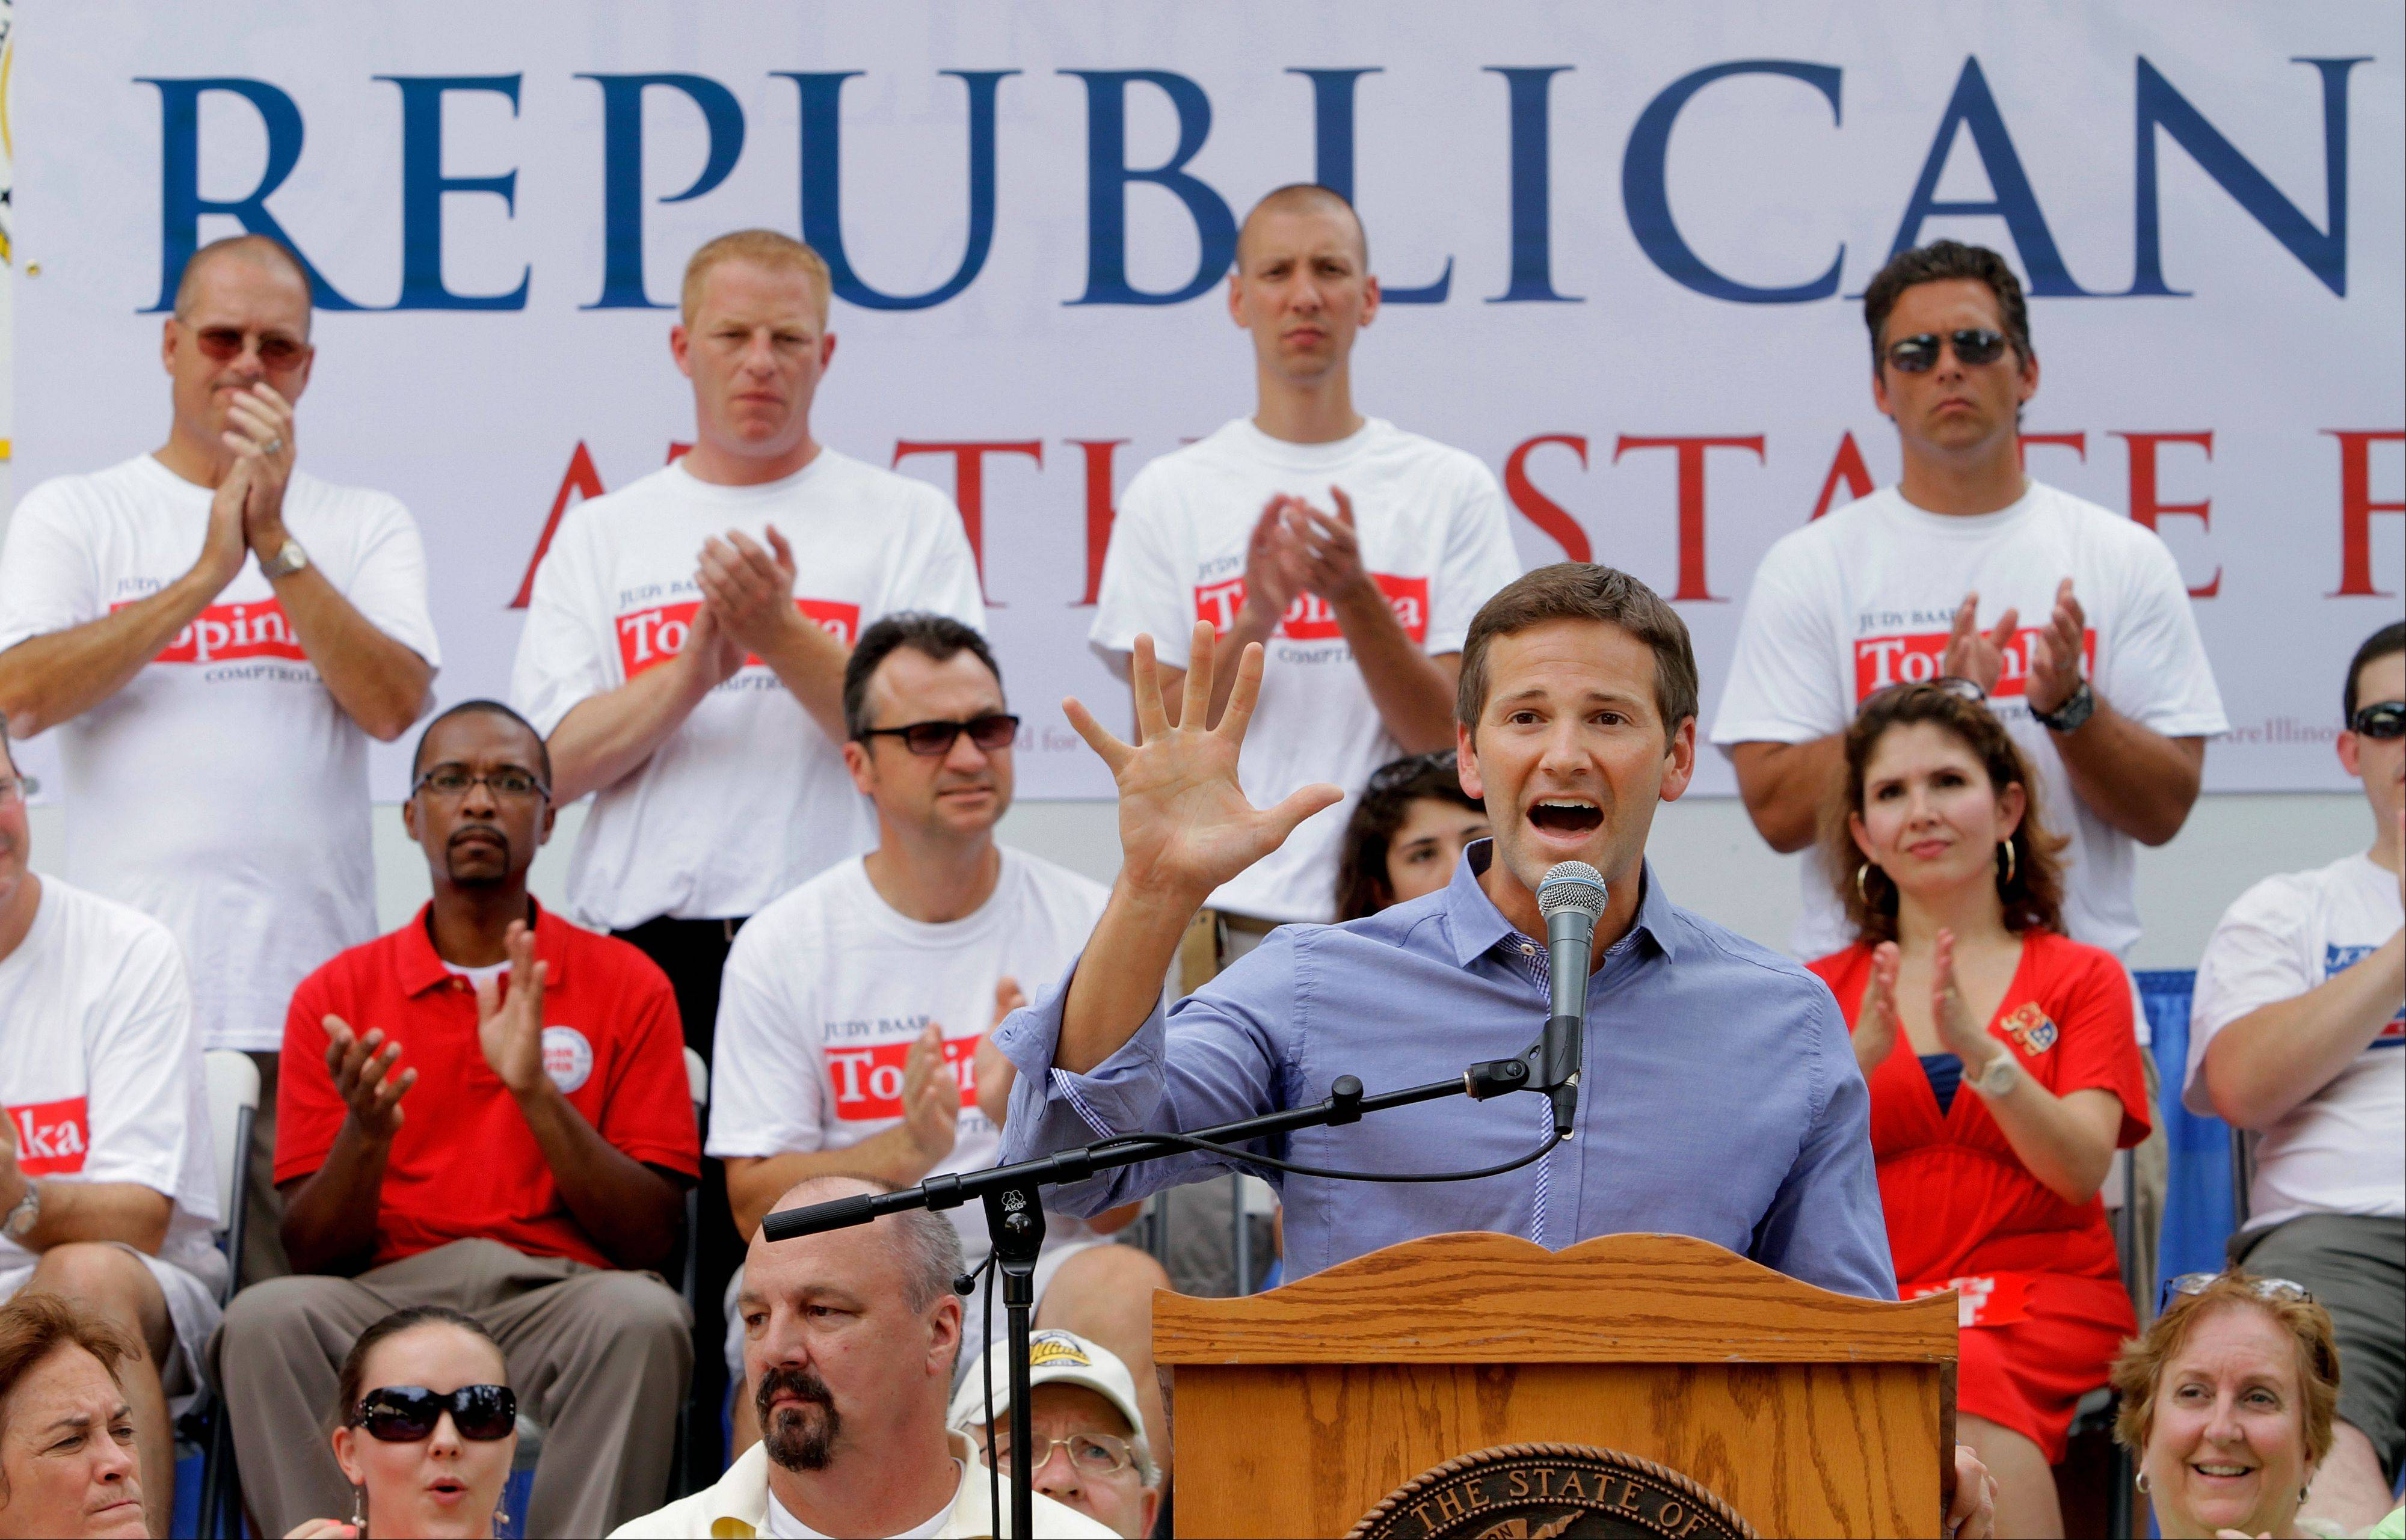 Congressman Aaron Schock of Peoria participates in a rally during Republican Day at the Illinois State Fair in 2011. He's being investigated by the House Ethics Committee.